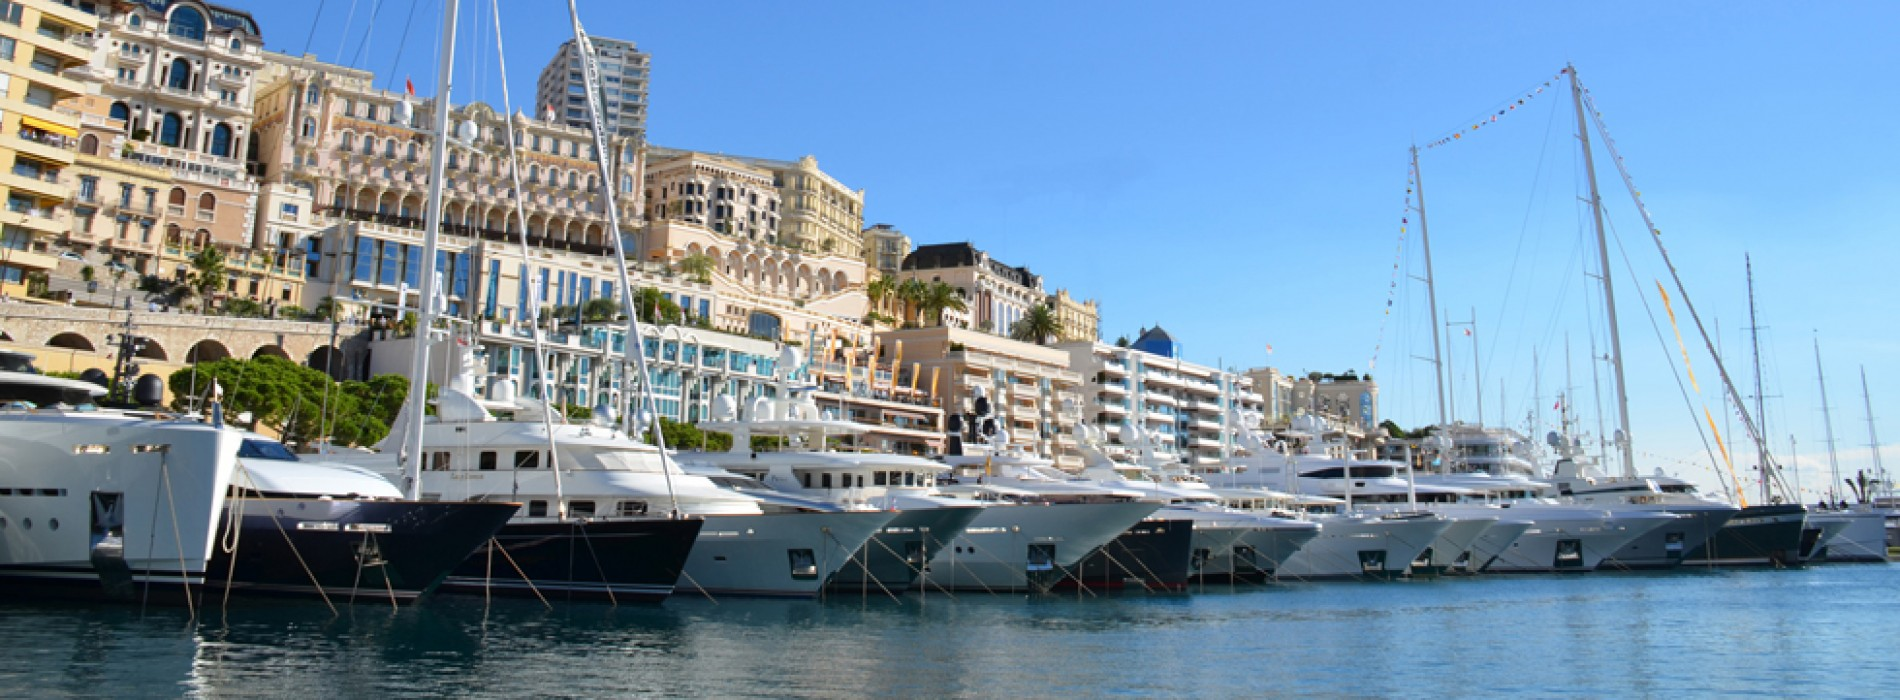 Monaco Yacht Show 2017 from 27 to 30 September 2017